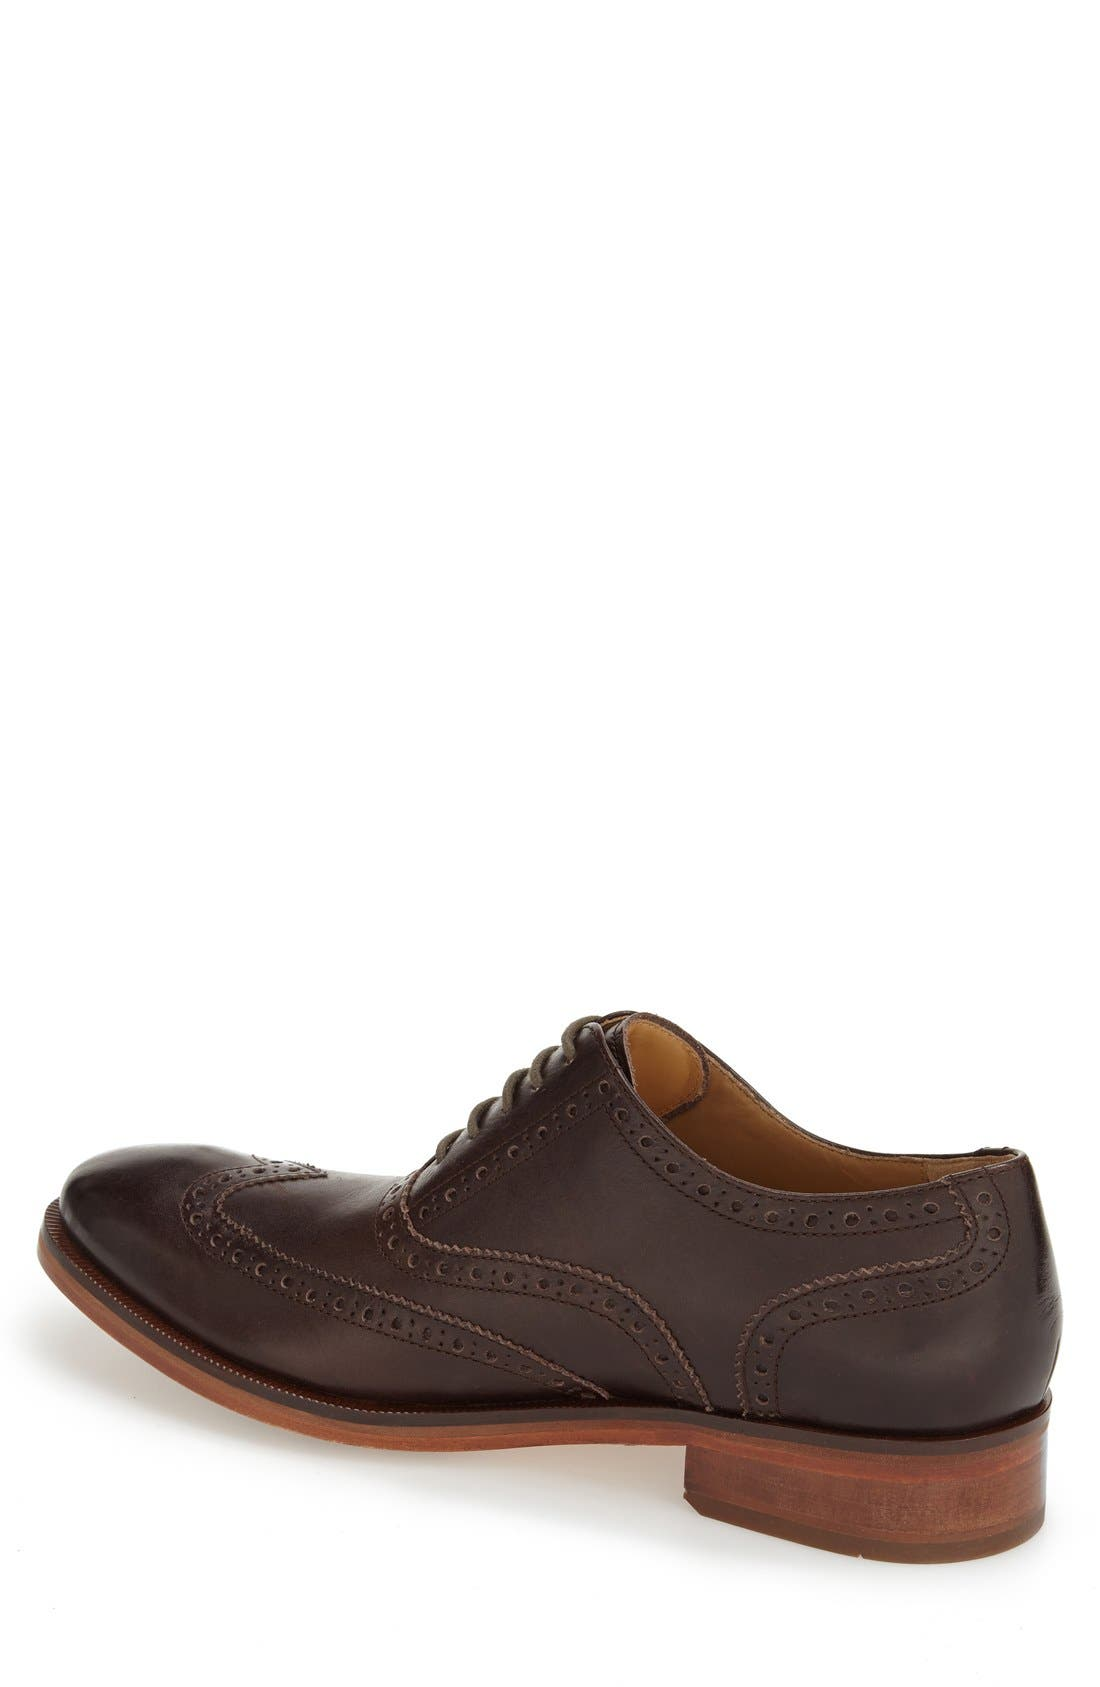 'Colton' Wingtip Oxford,                             Alternate thumbnail 2, color,                             Chestnut